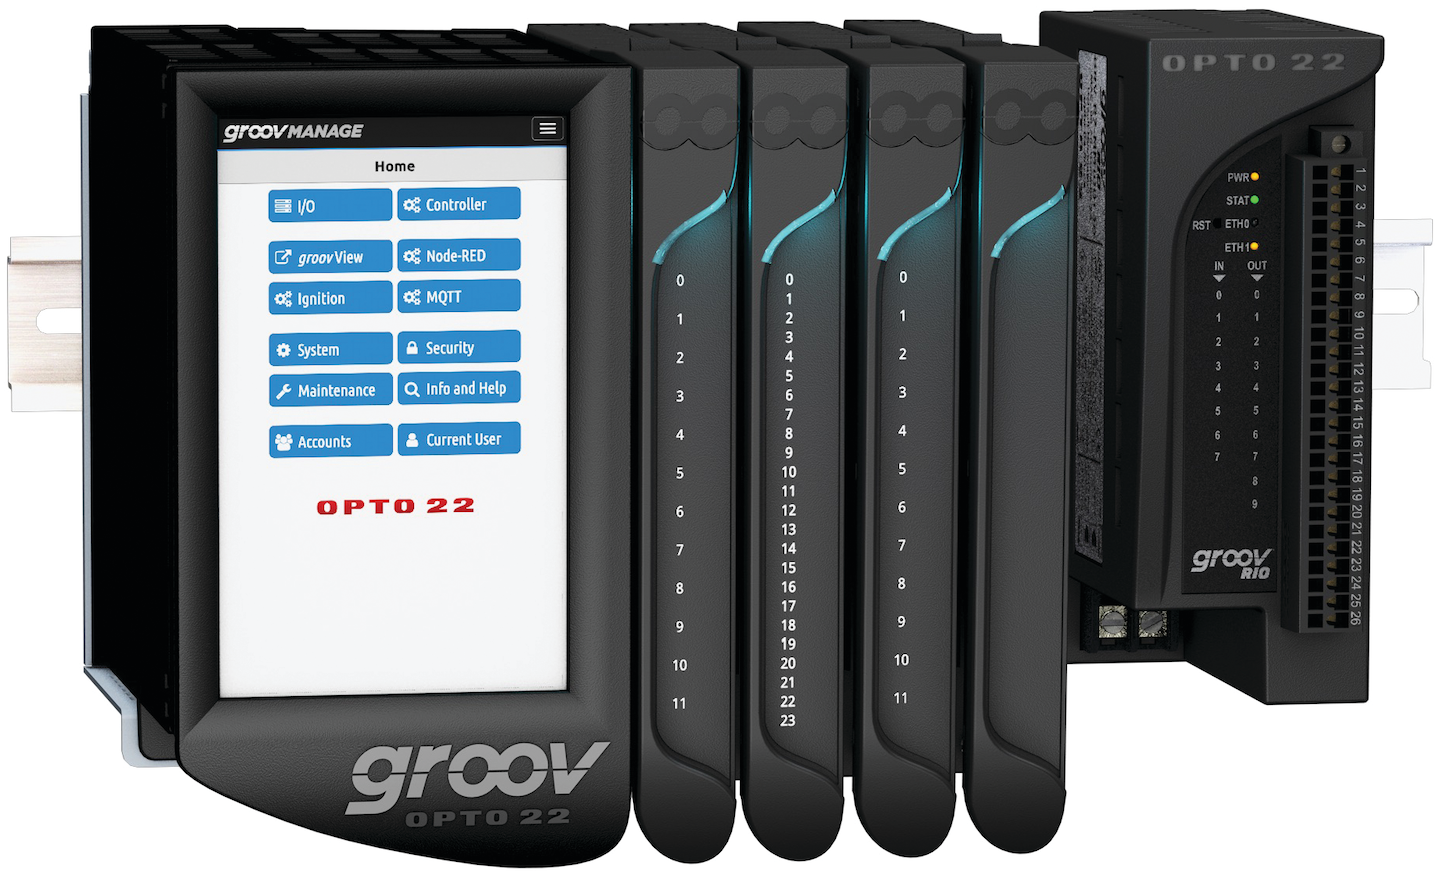 Opto 22's groov EPIC edge programmable industrial controller and groov RIO edge I/O module.